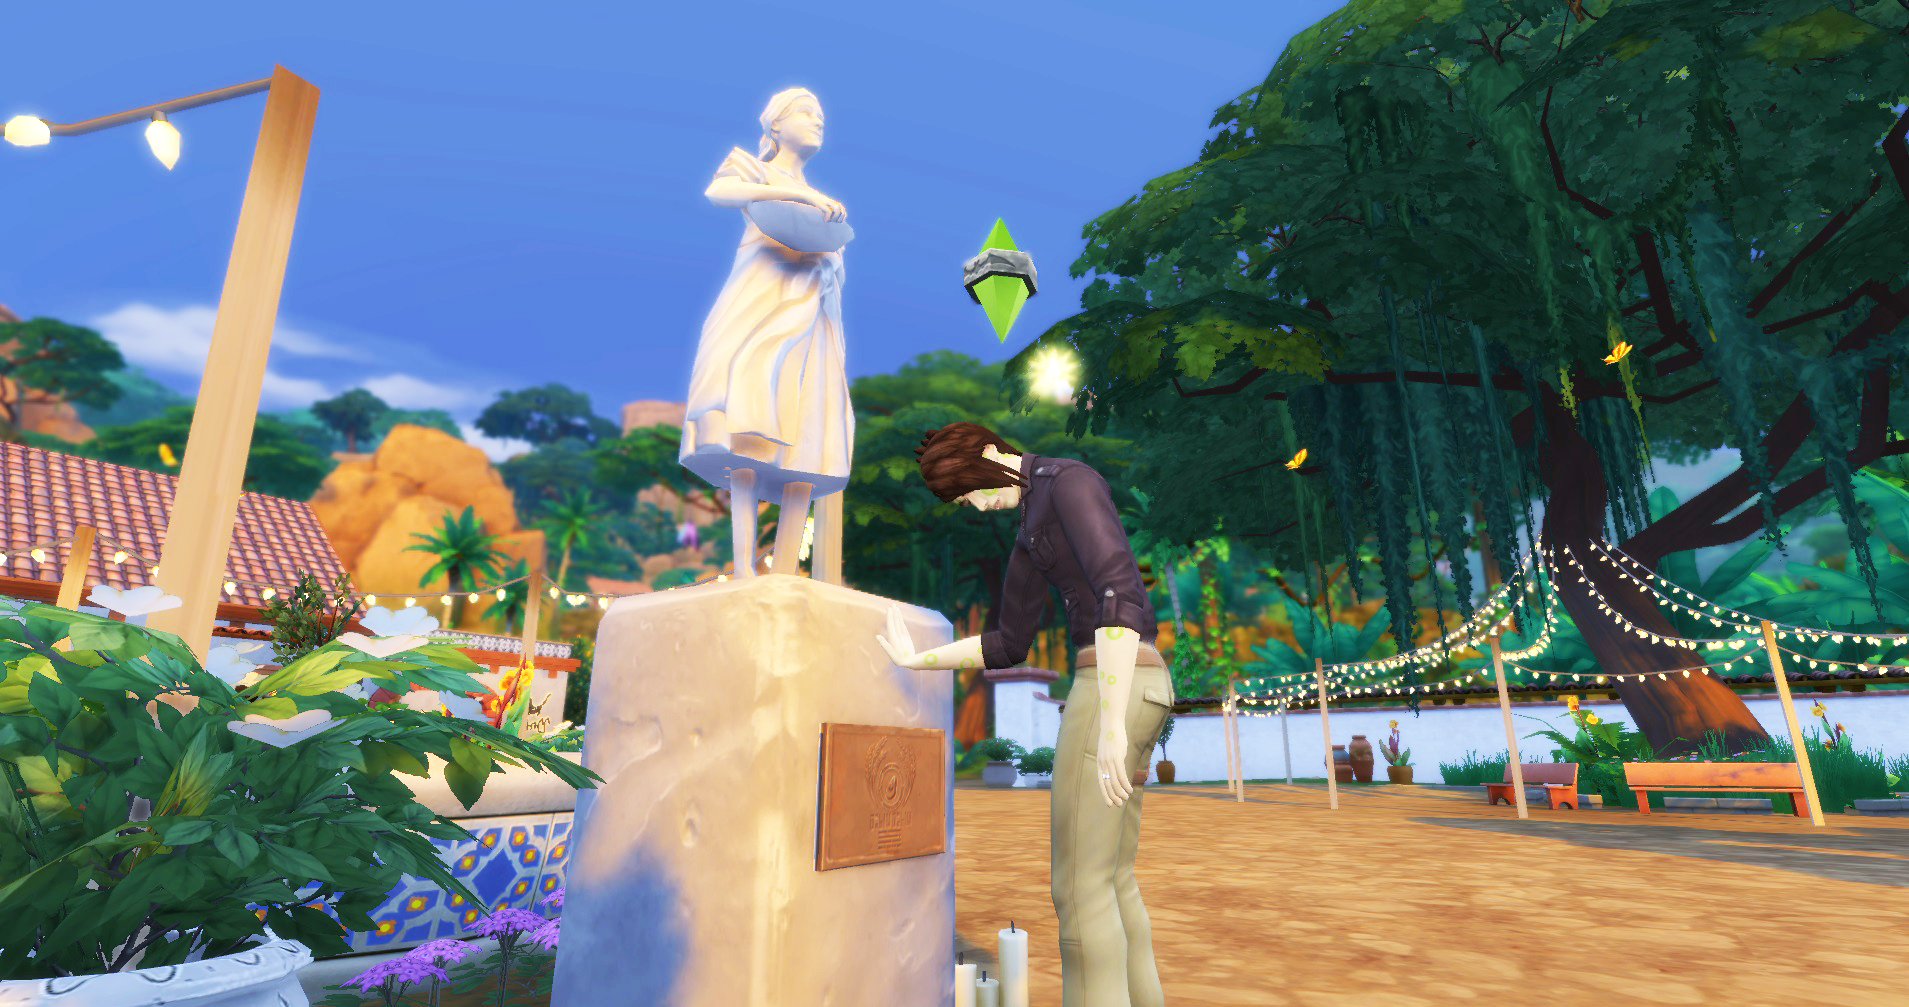 les_sims_4_jungle_statue_madre